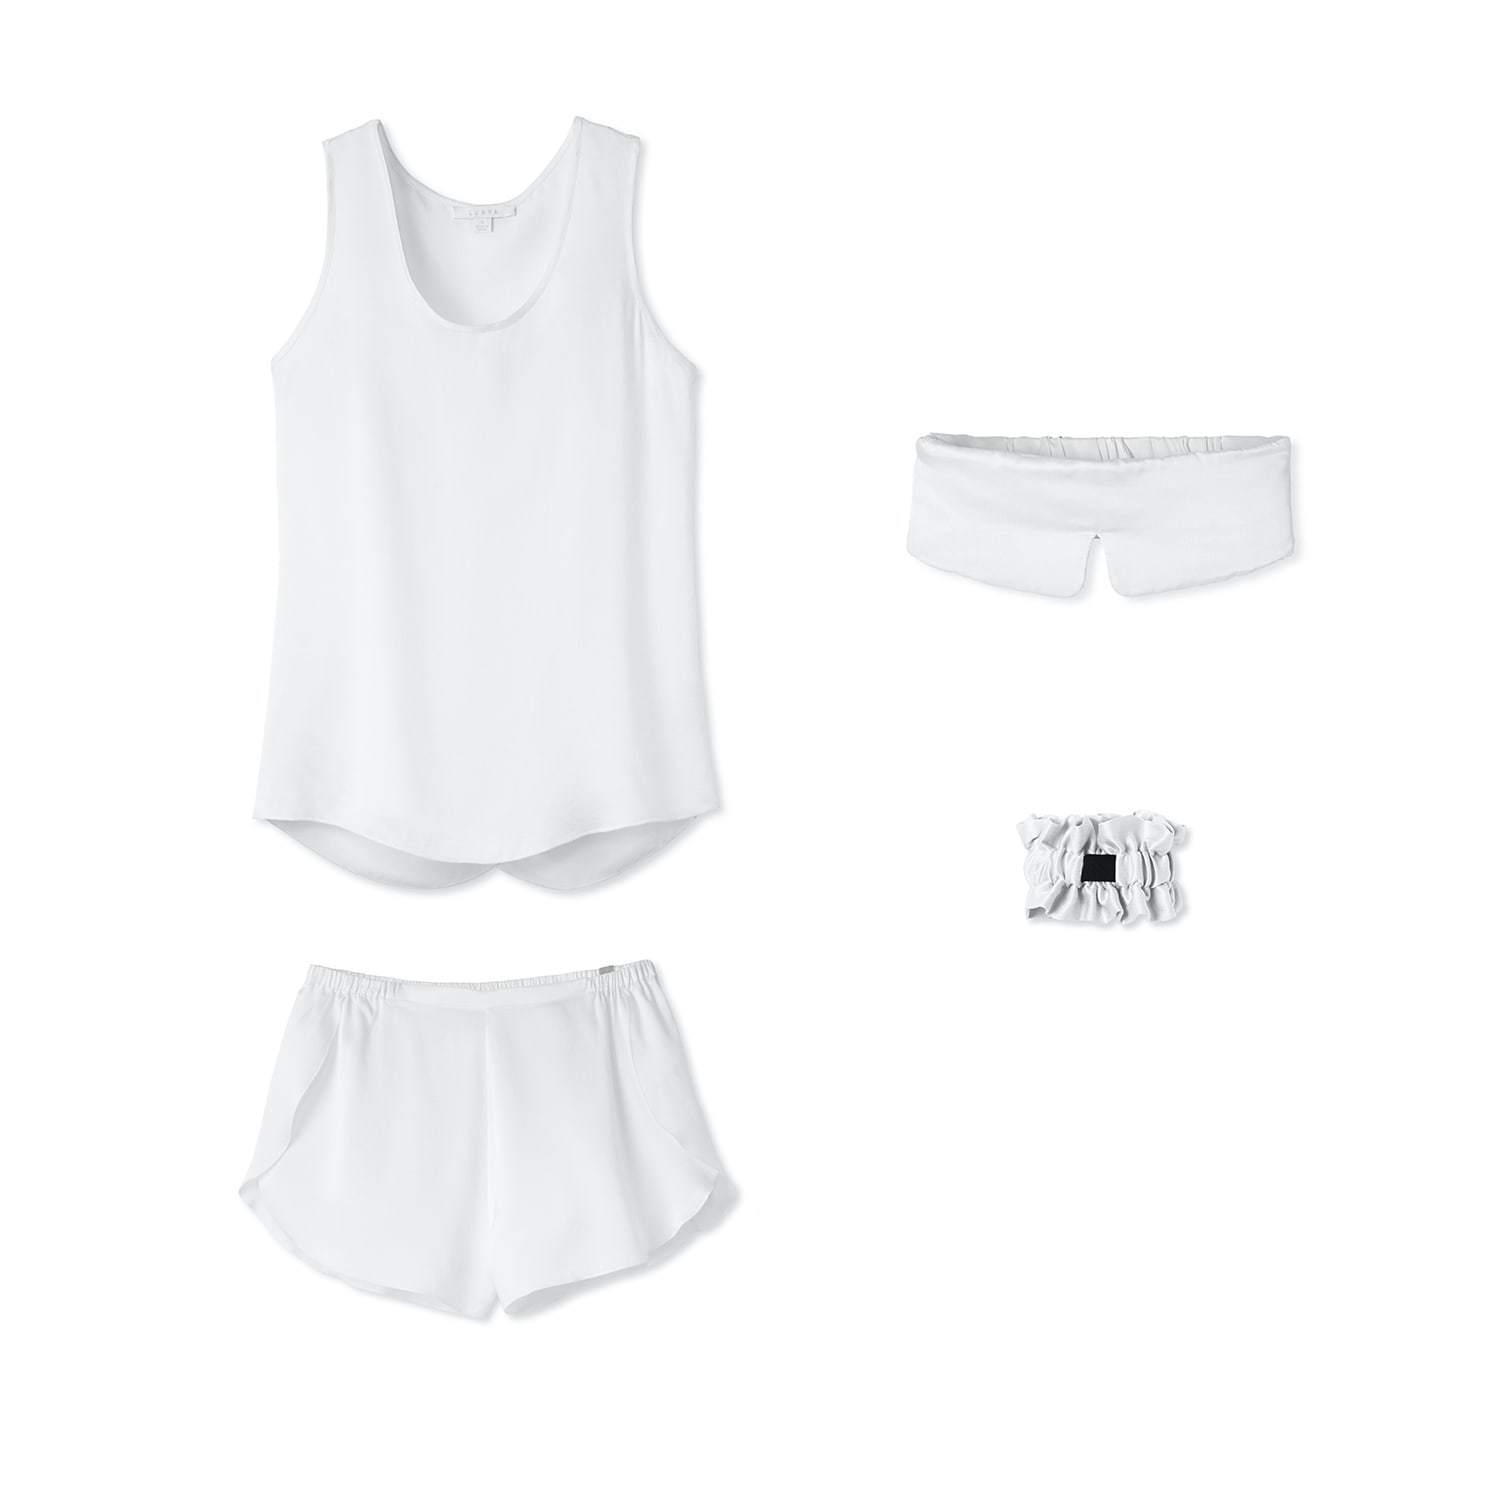 Lunya Sleepwear Washable Silk Dream Kit - #Starlight